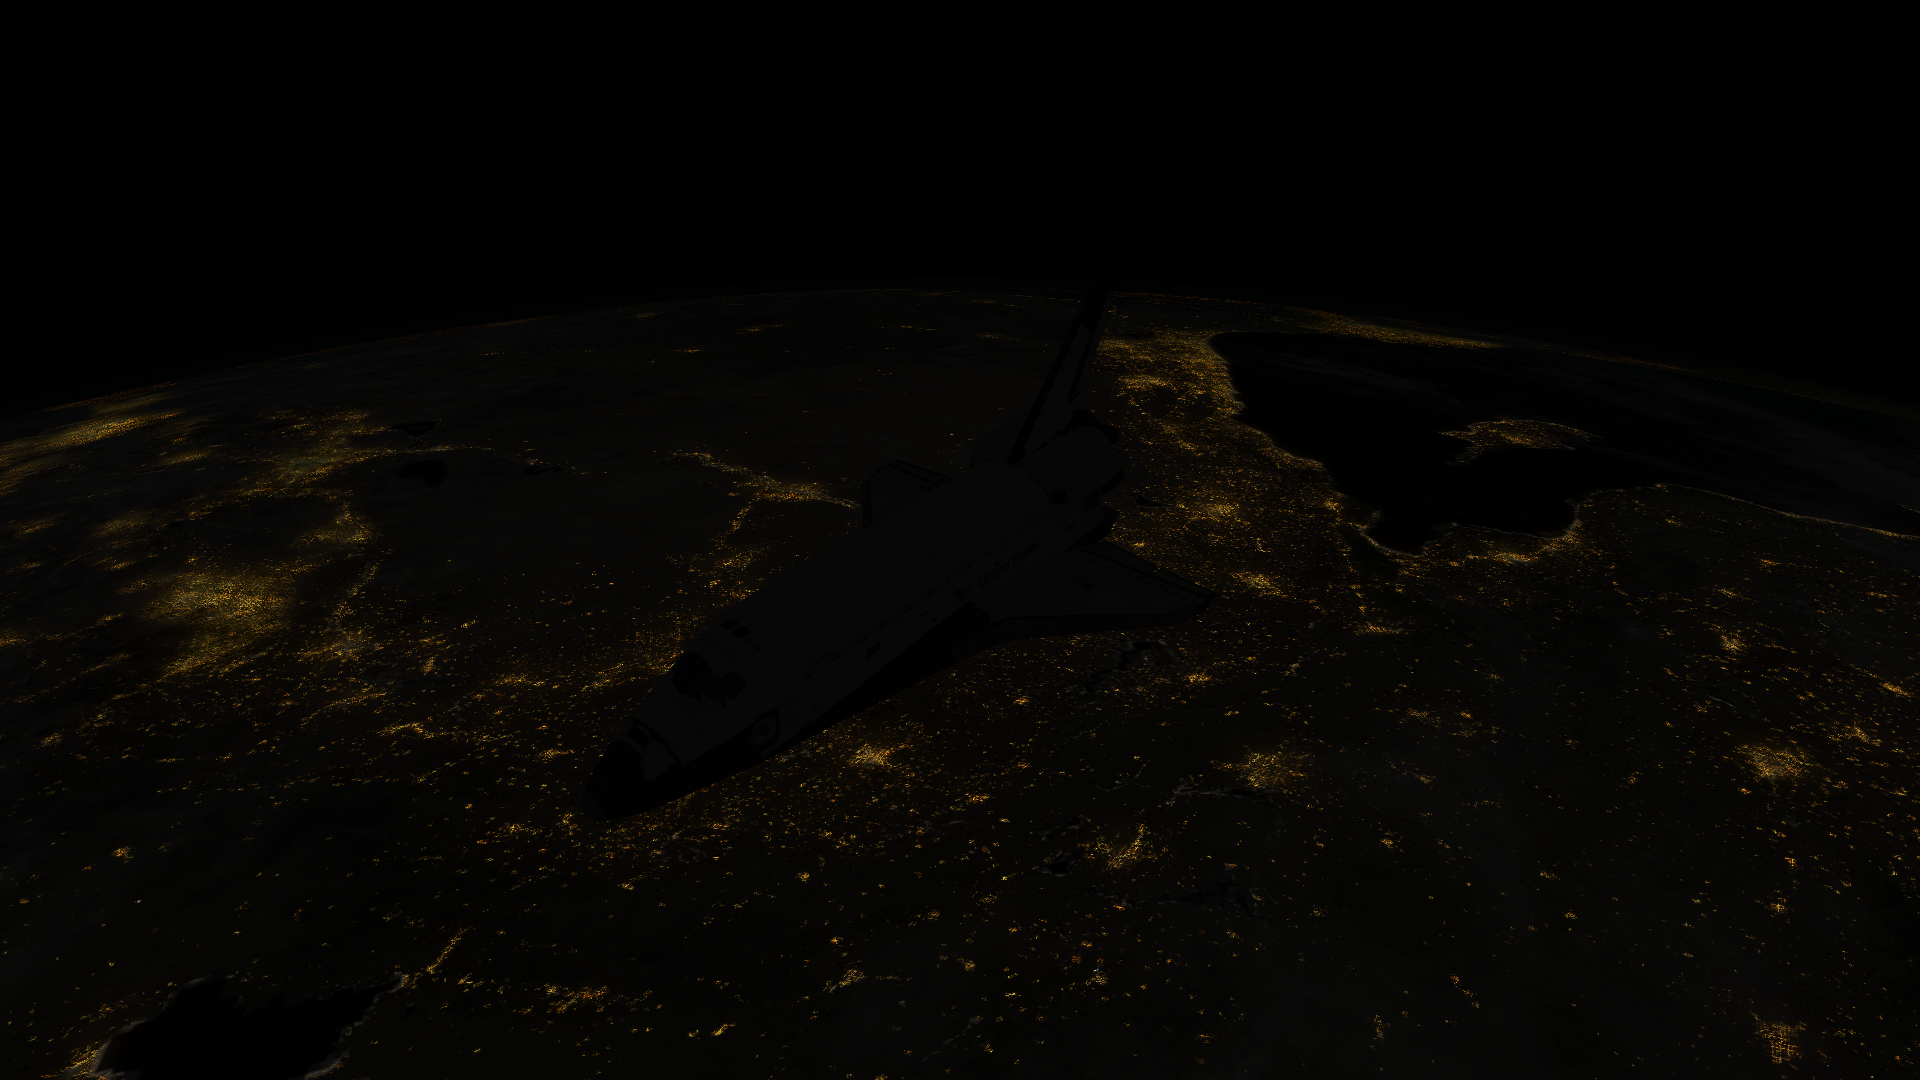 Kerbal_Space_Program_12.01.2021_23_53_52